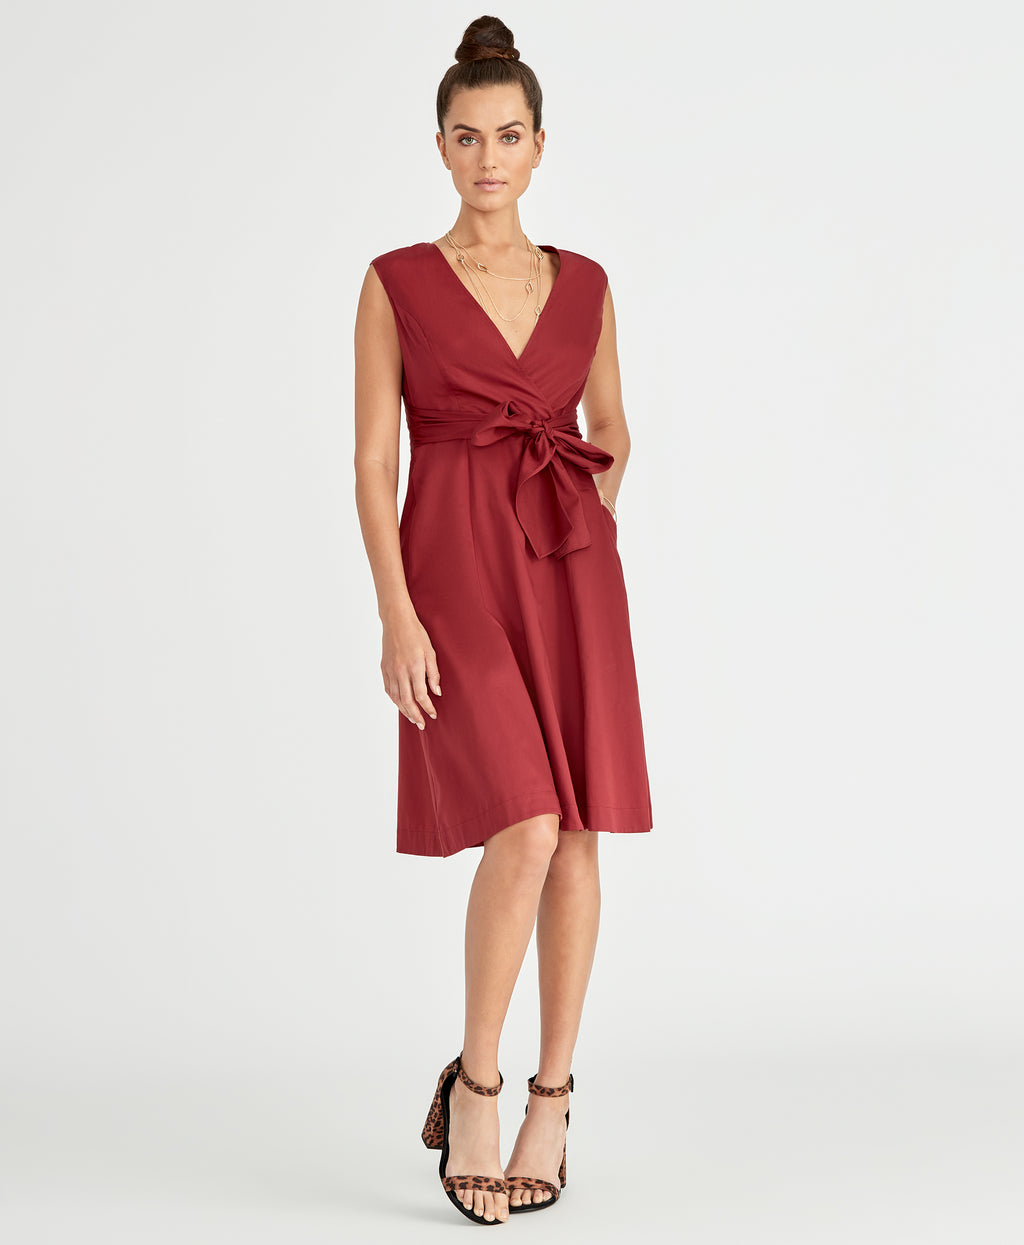 Pearl Dress | Black Cherry